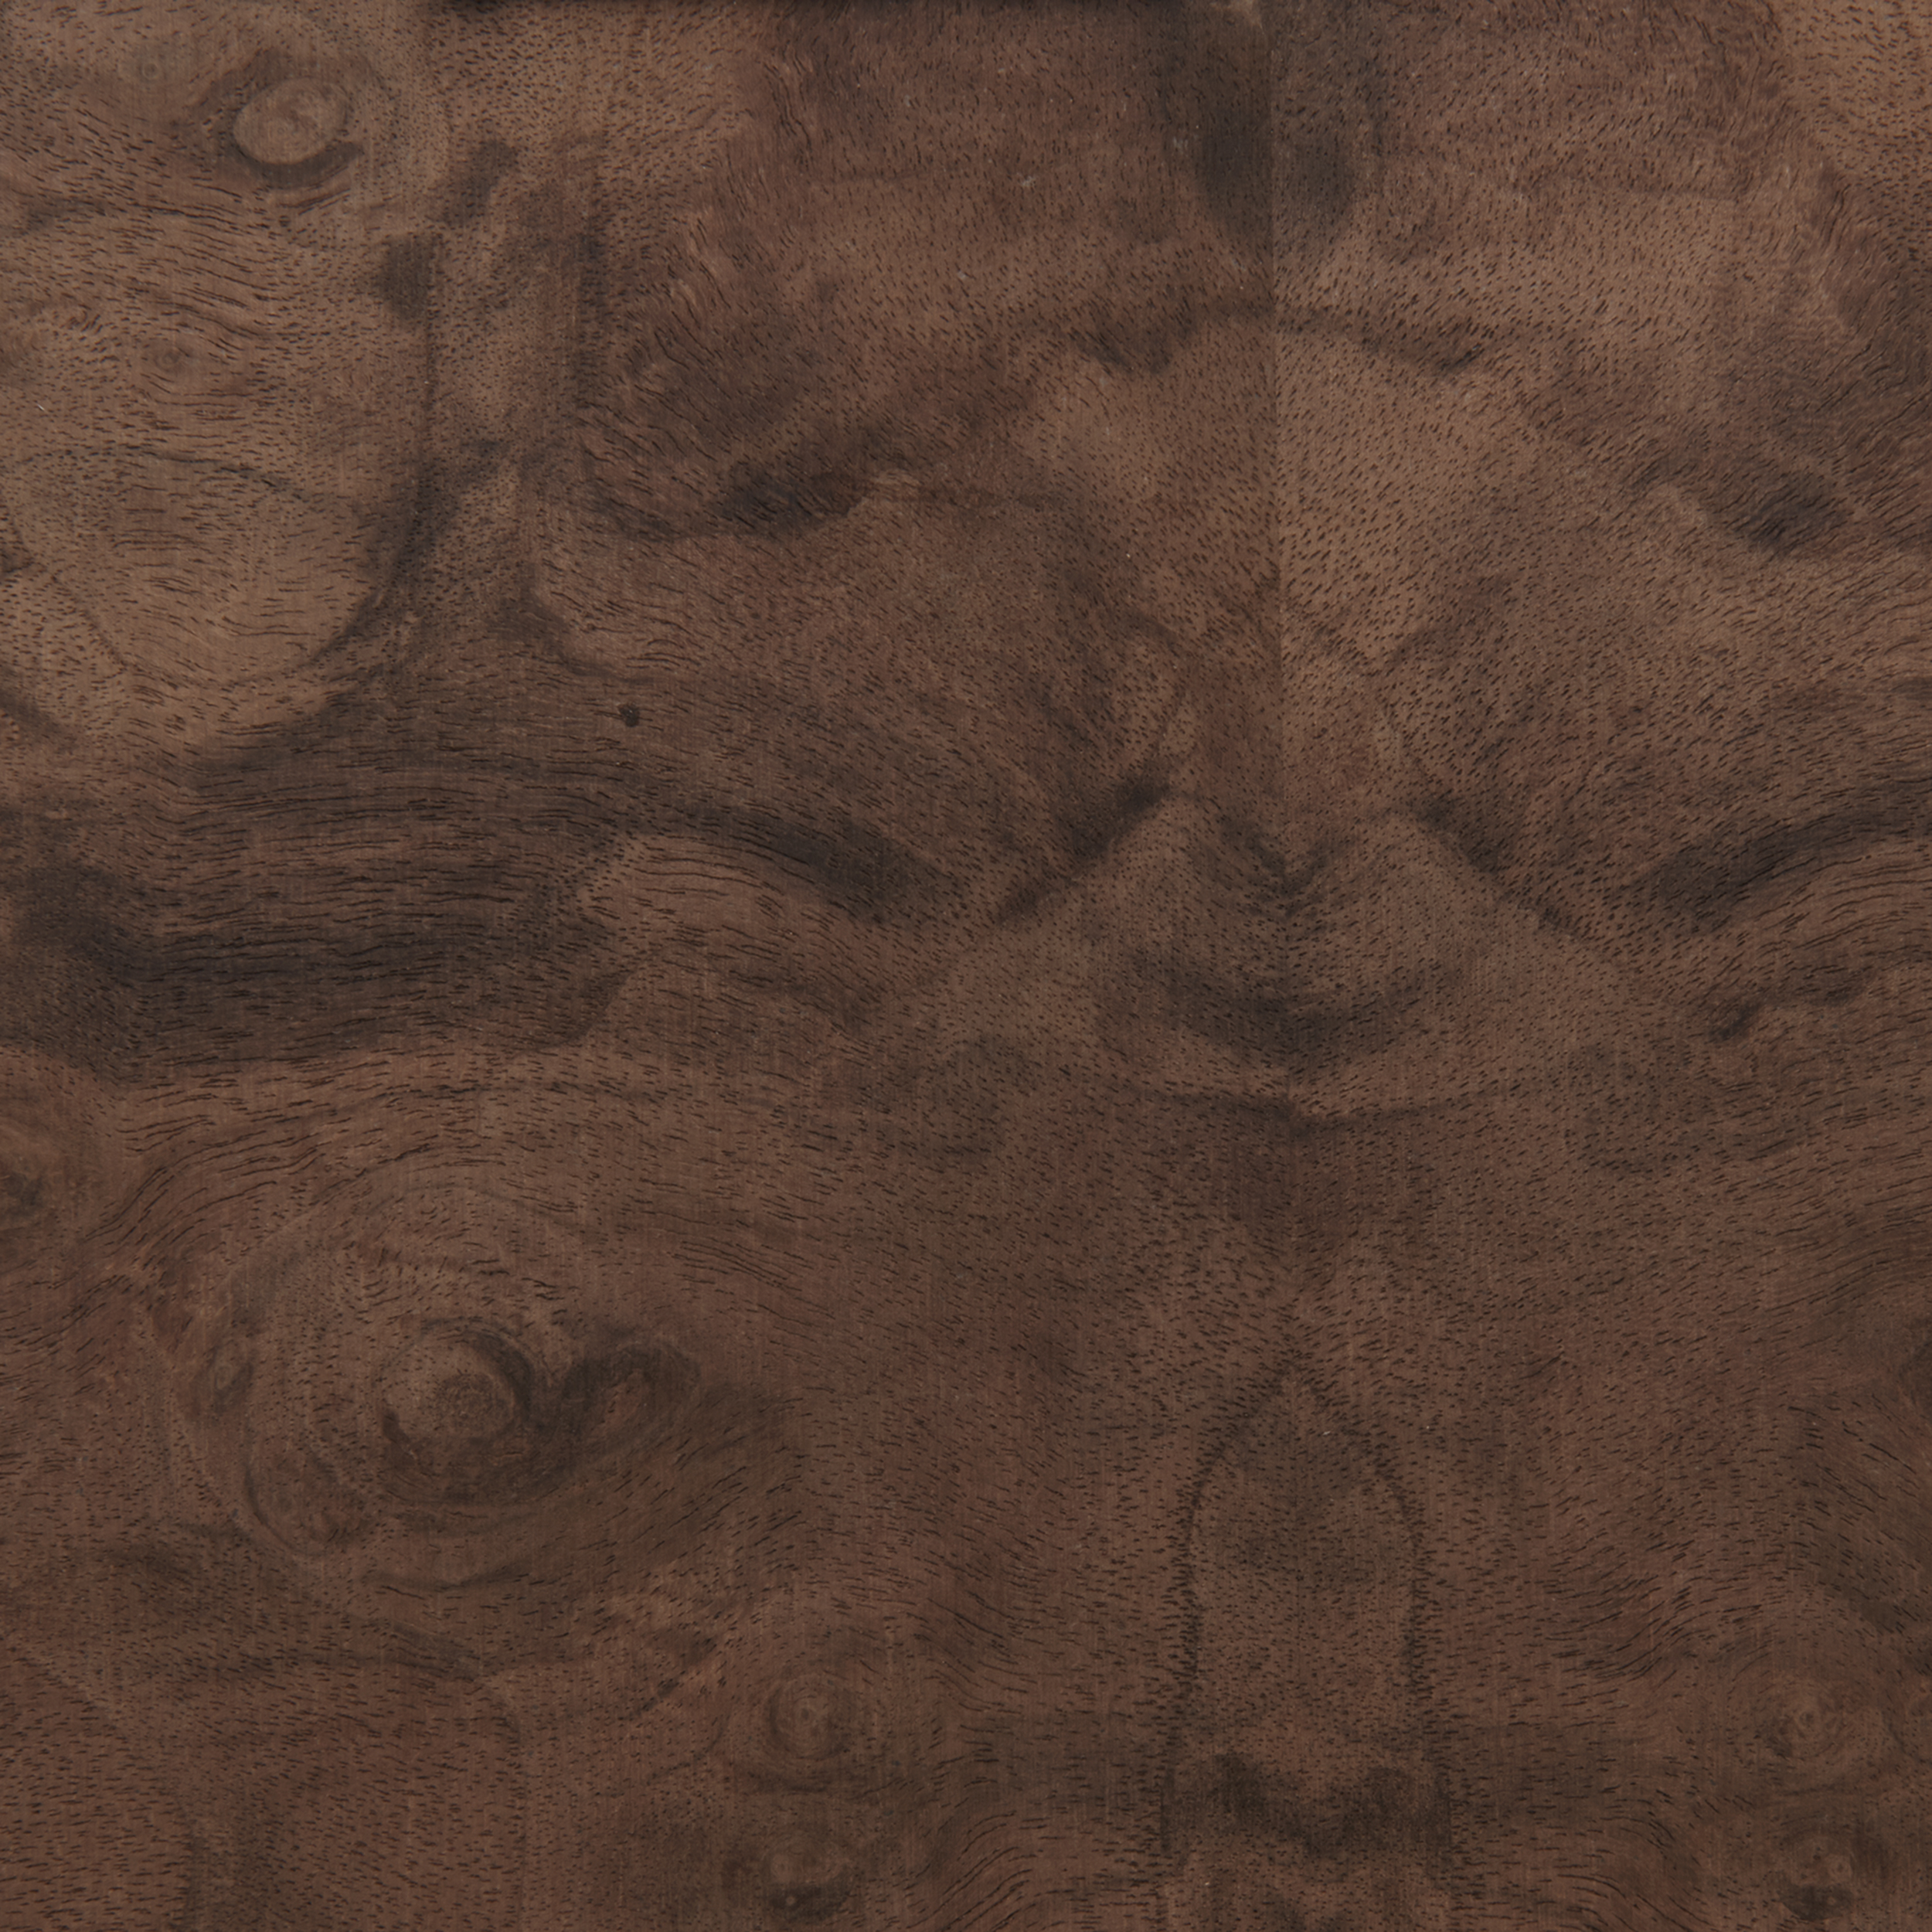 Walnut Burl 4' x 8' Veneer Sheet, 3M PSA Backed